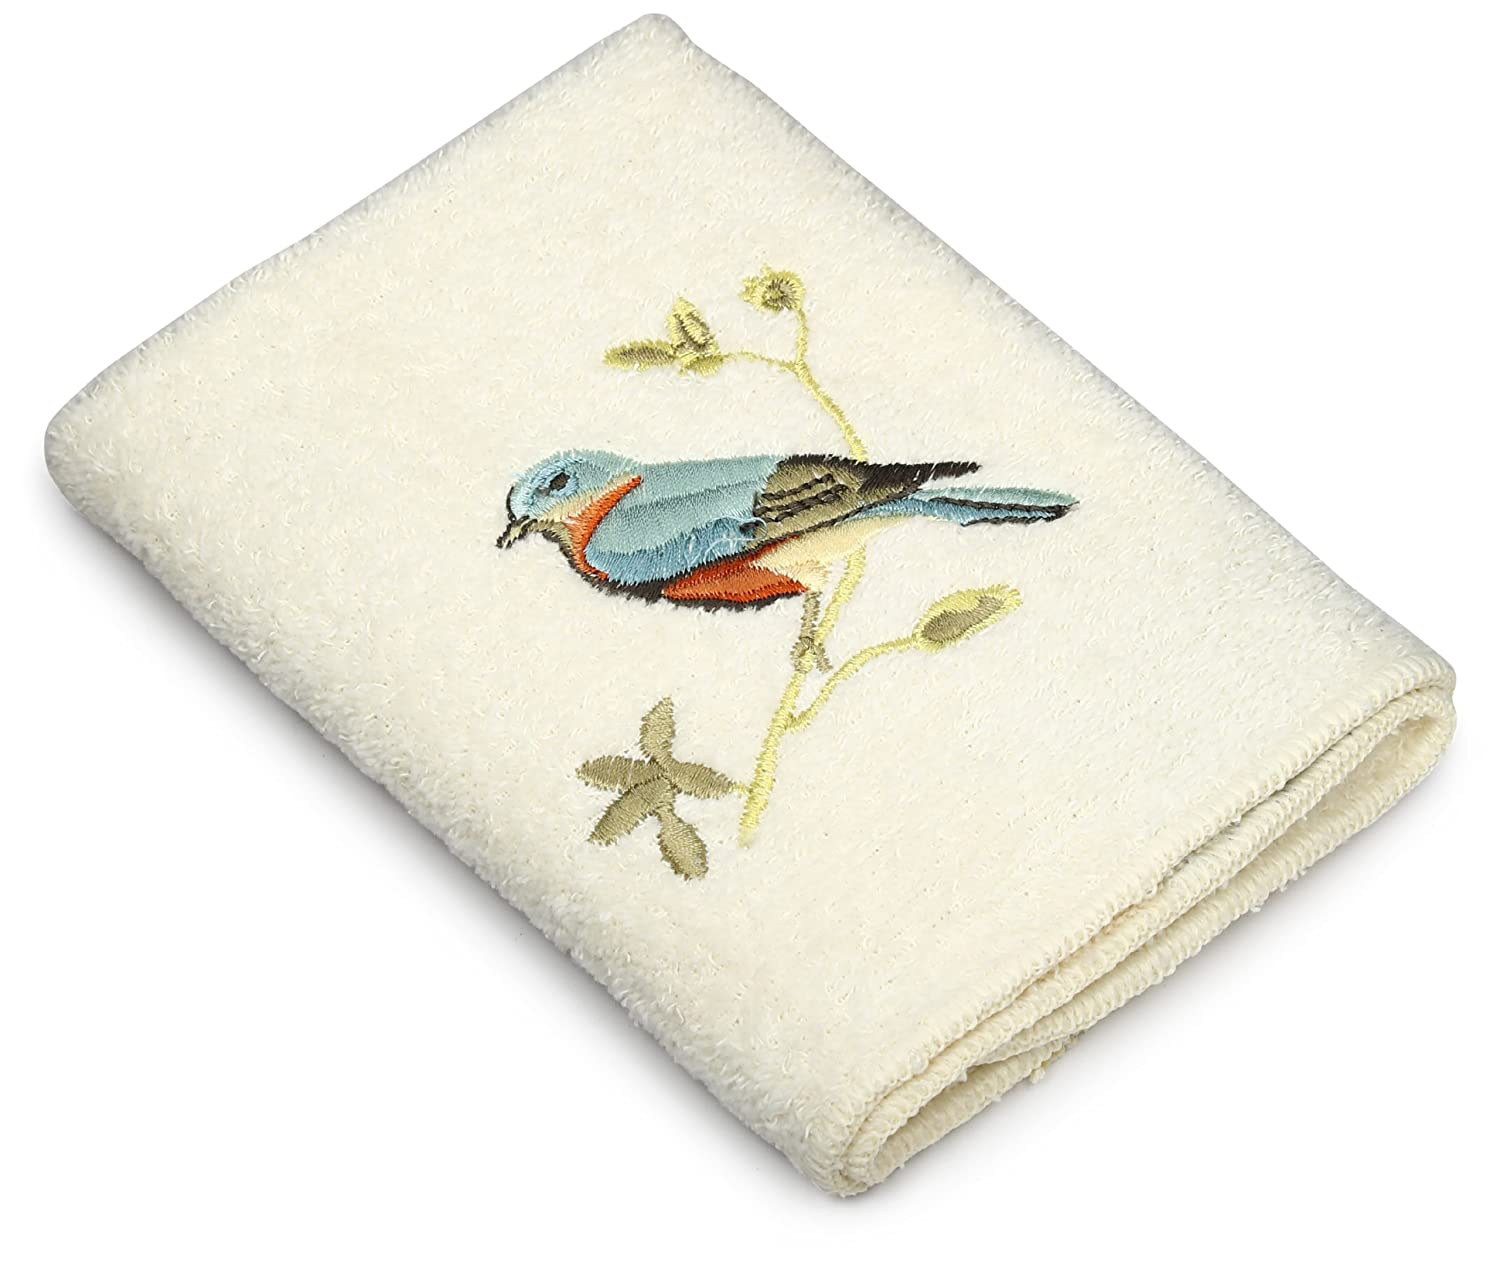 Avanti Linens Gilded Birds Embroidered 4-Piece Decorative Towel